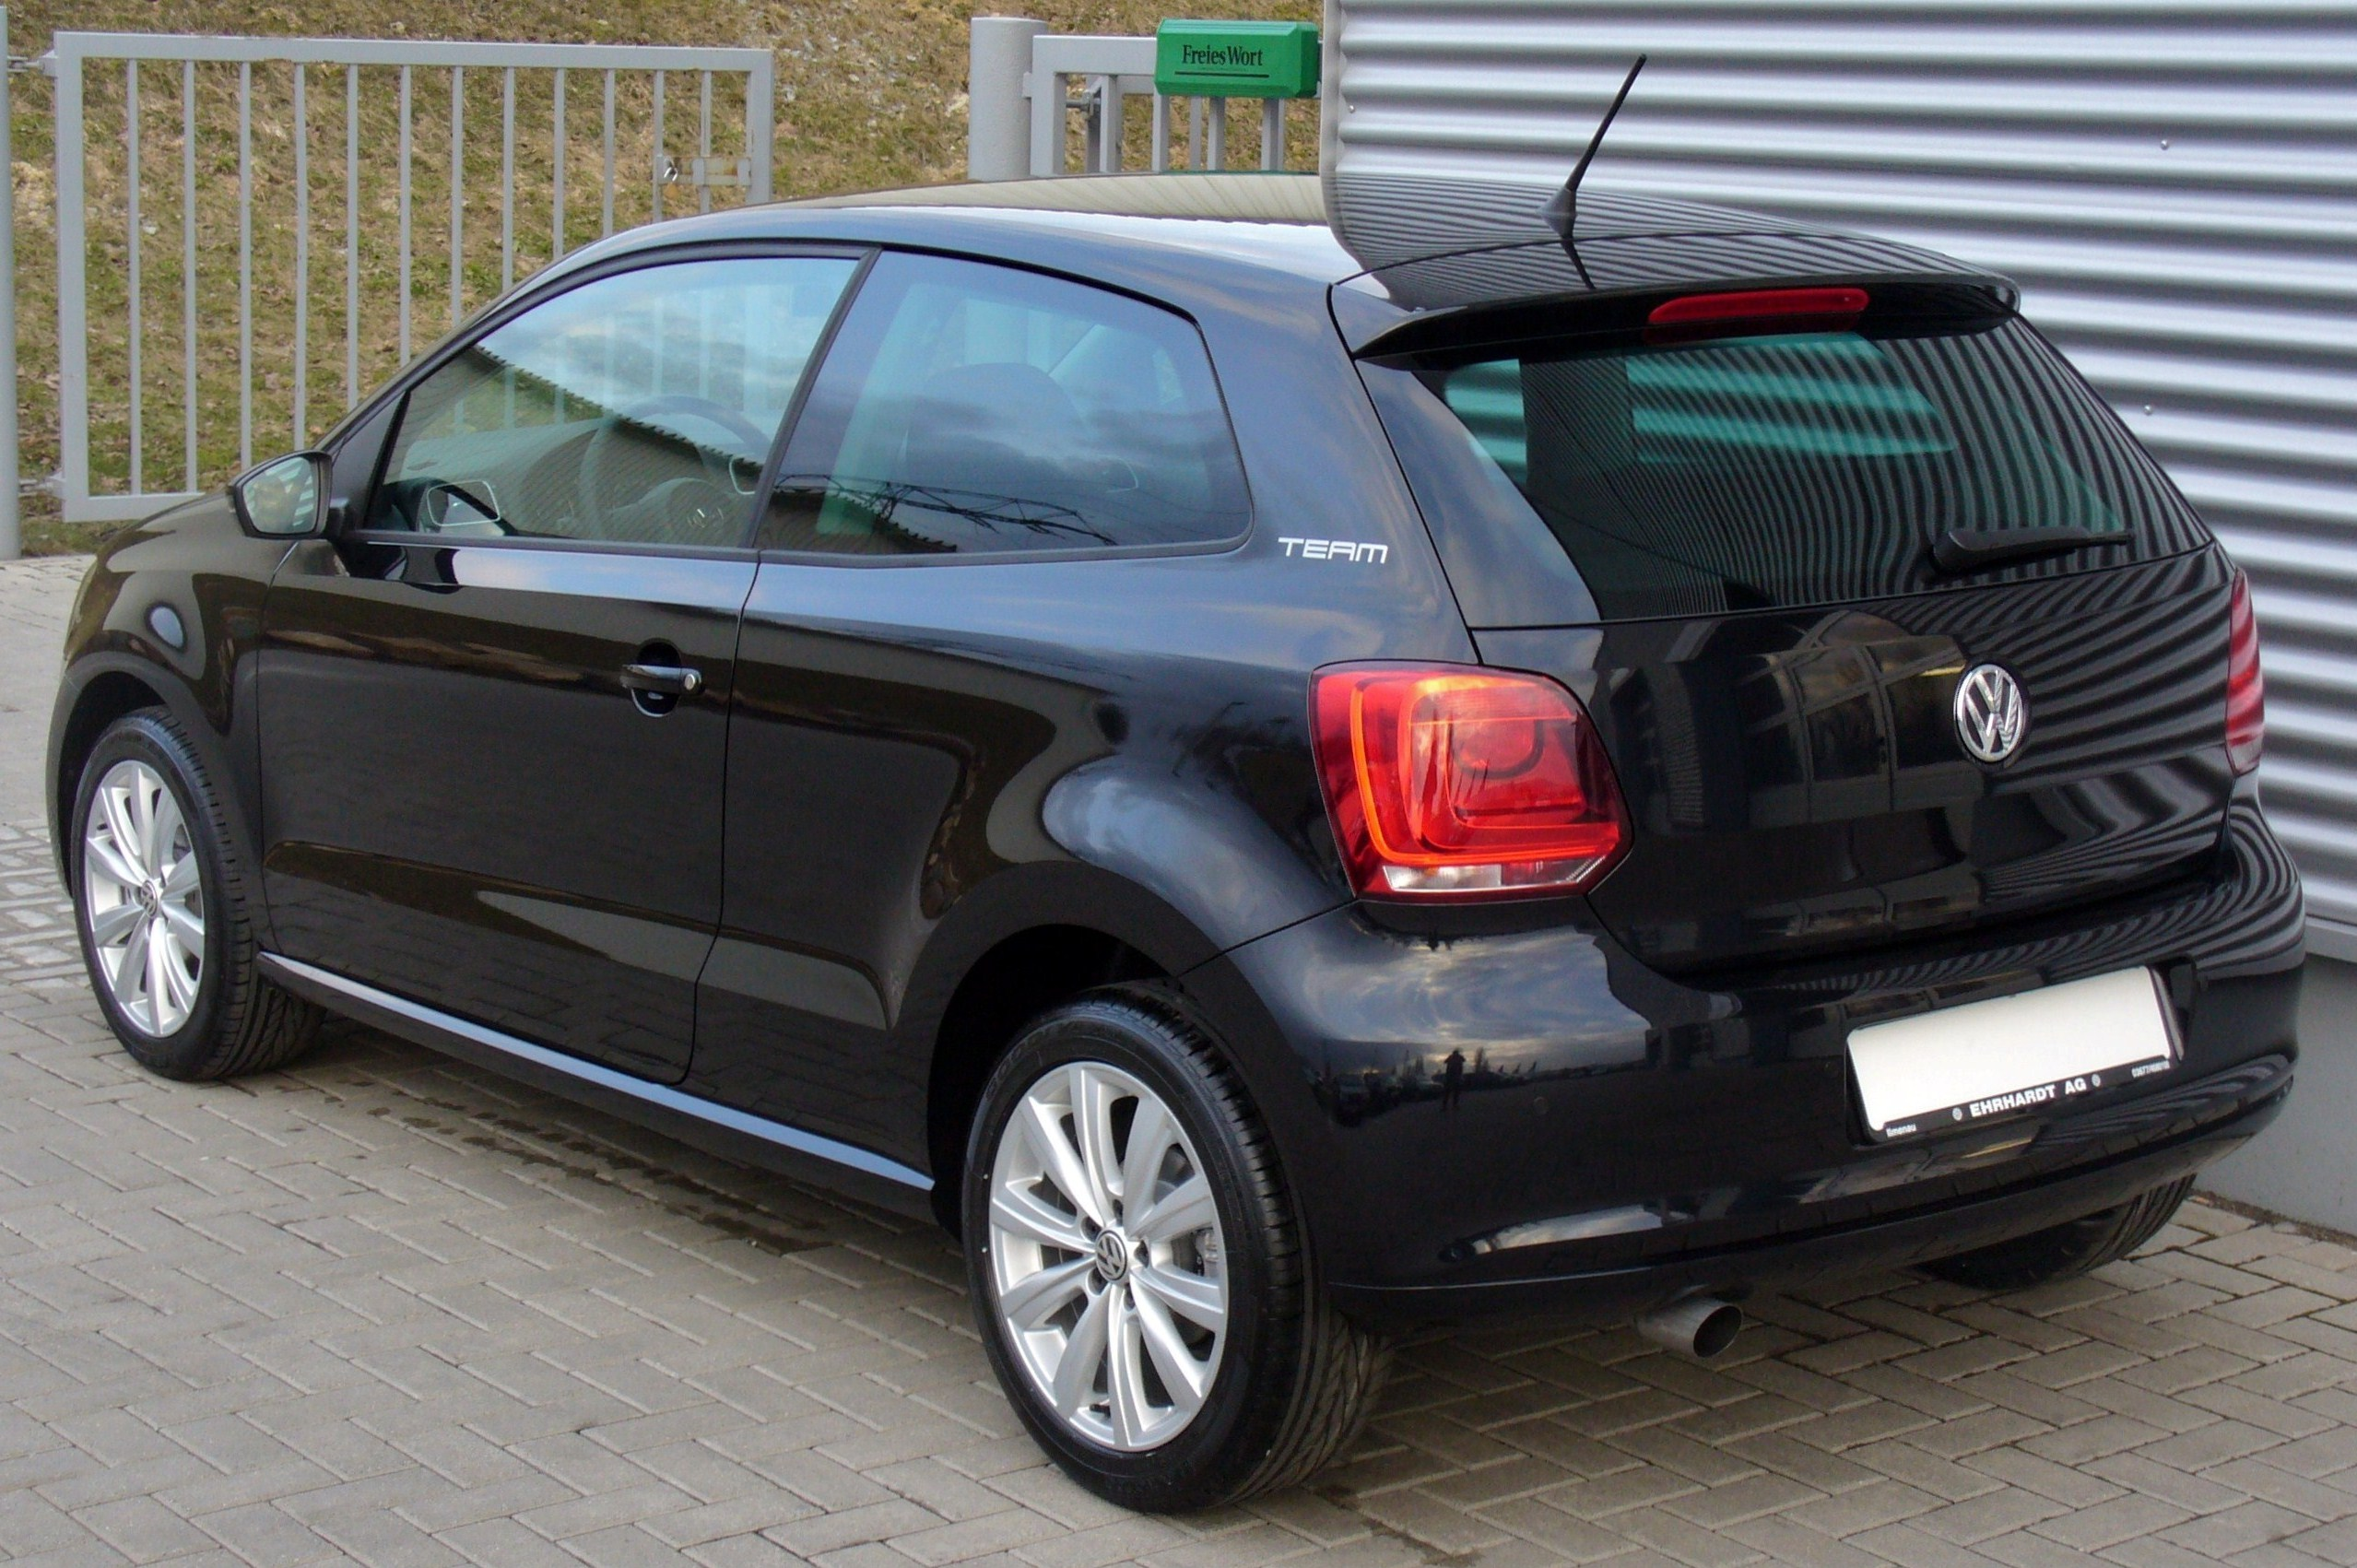 file vw polo v 1 2 tsi team deepblack heck jpg wikimedia commons. Black Bedroom Furniture Sets. Home Design Ideas